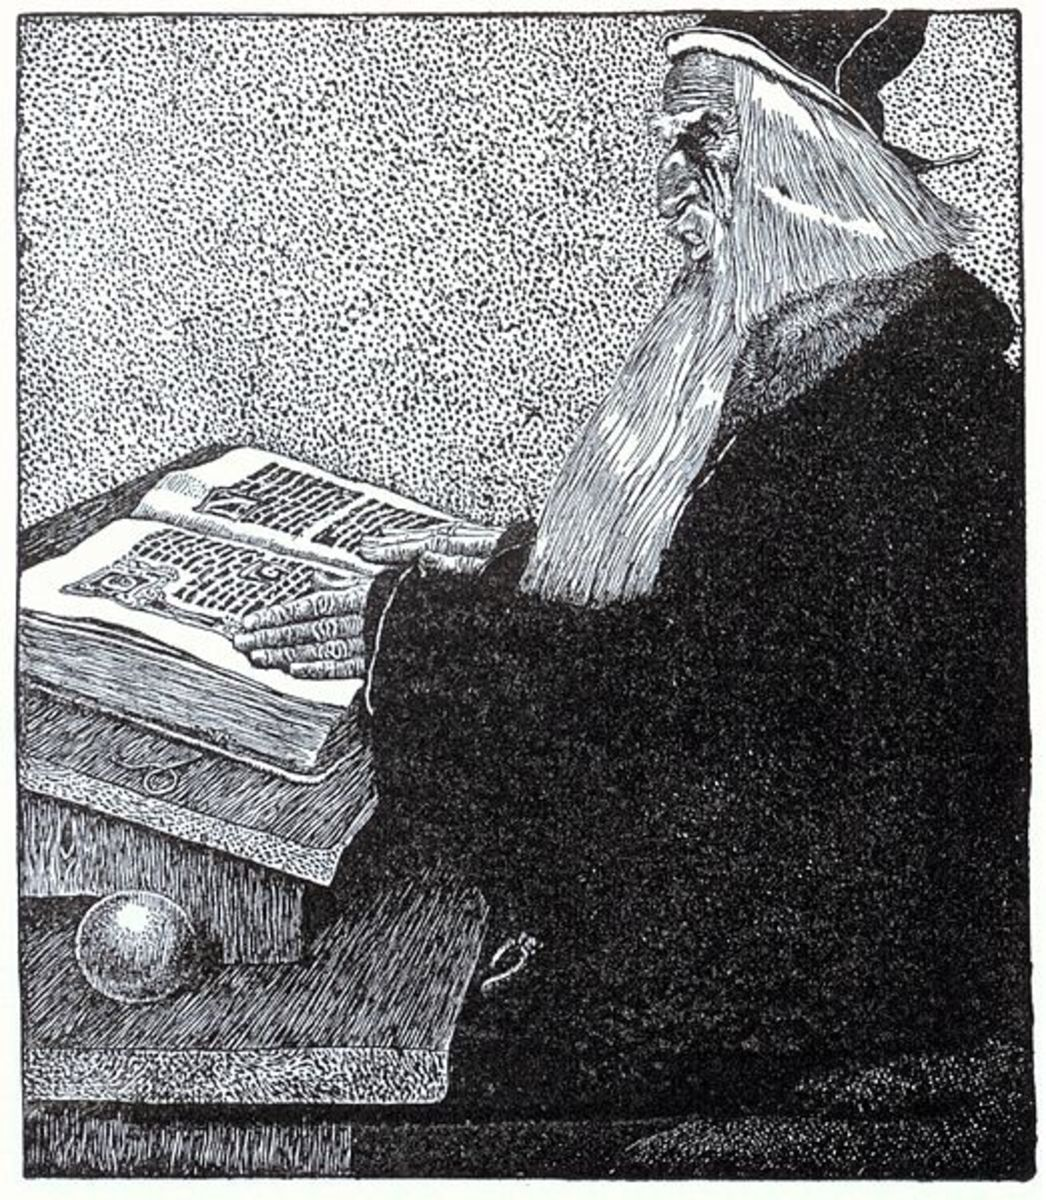 Merlin the Enchanter, by Howard Pyle from The Story of King Arthur and His Knights. (1903)